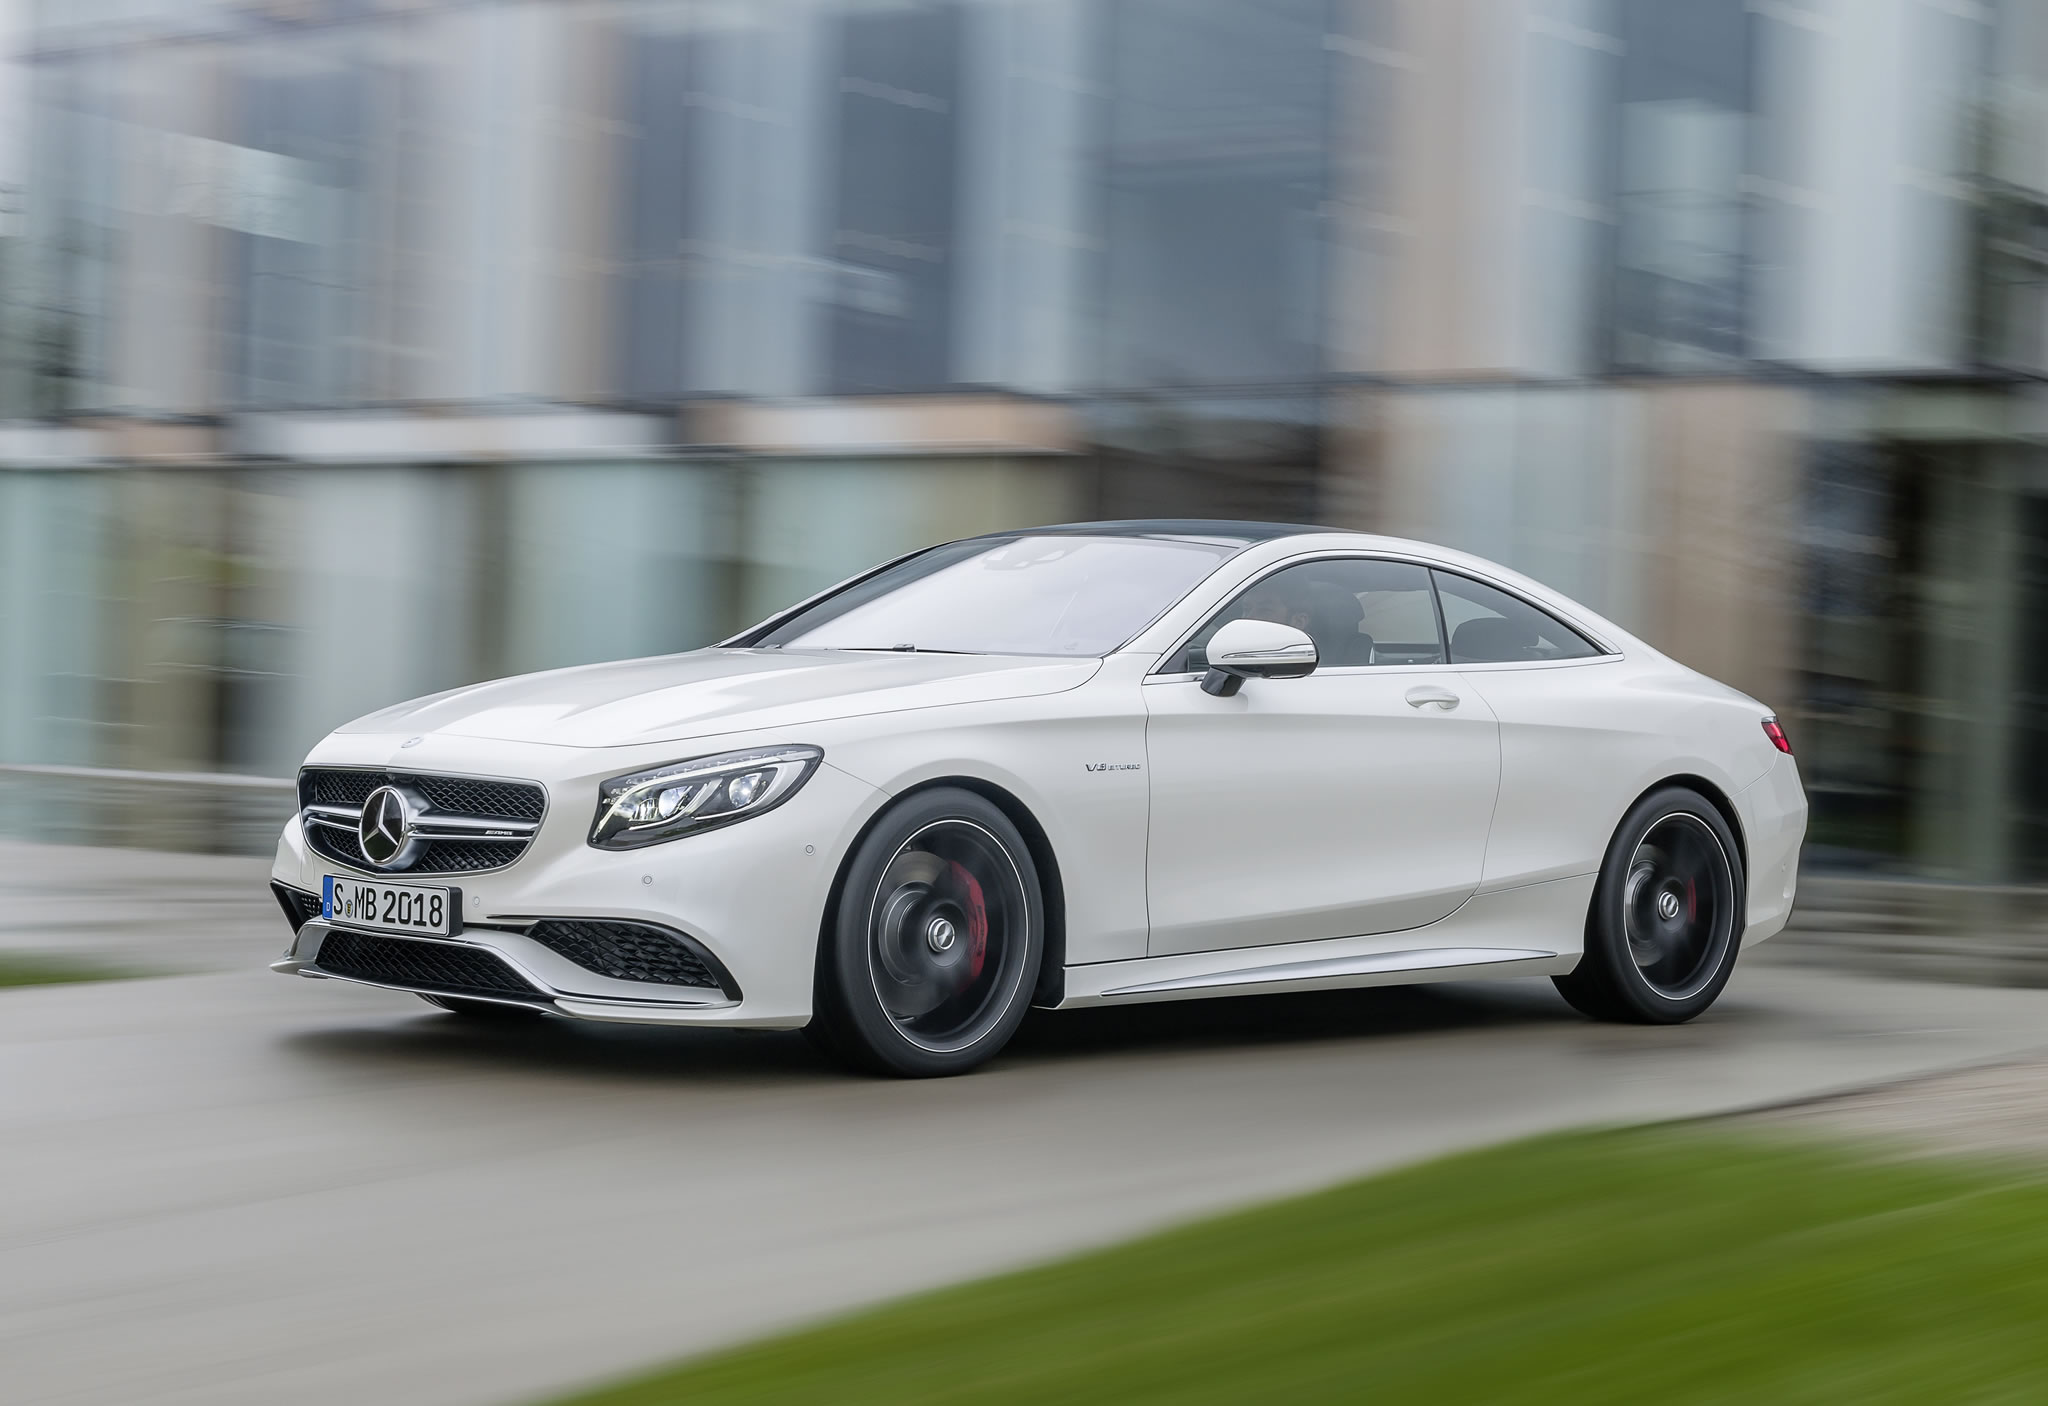 2015 mercedes benz s63 amg coupe front photo diamond for 2015 white mercedes benz